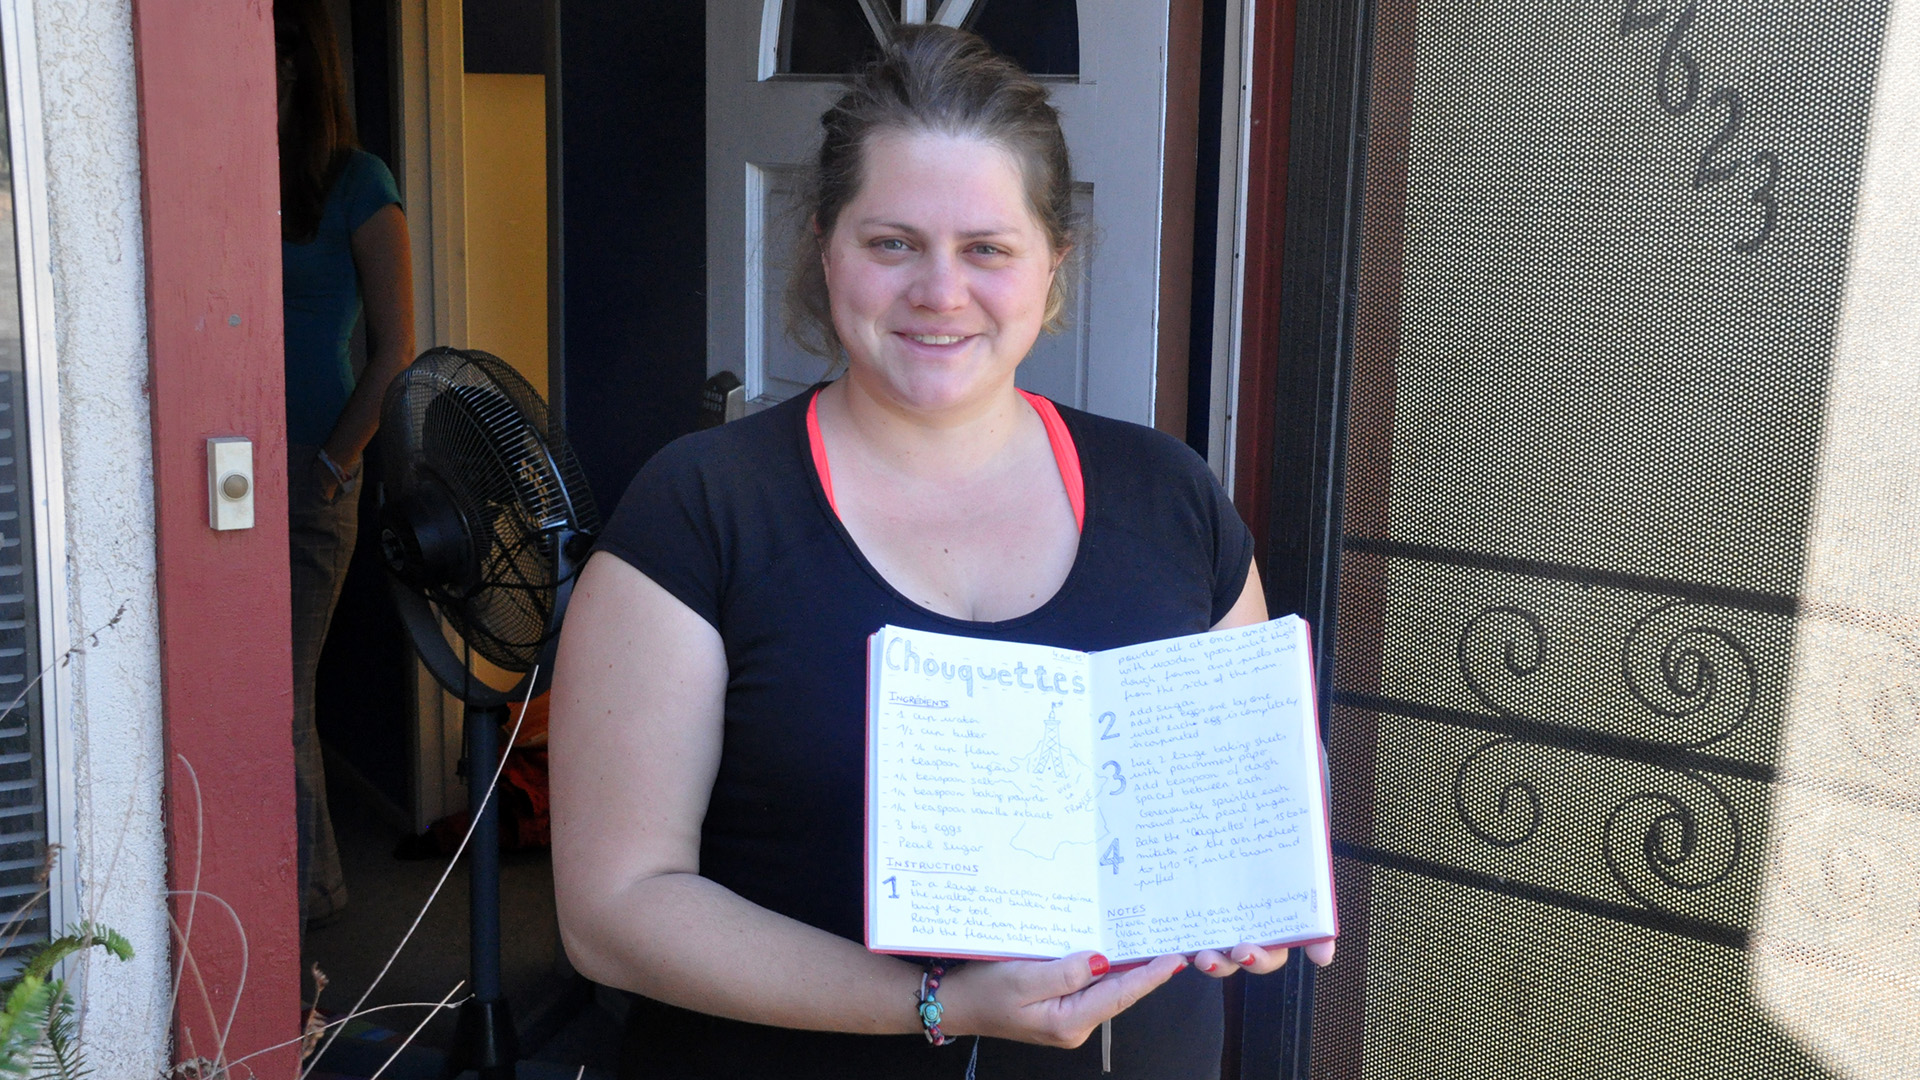 Cecile Barbot holding a journal that contains a hand-written recipe for Chouquettes